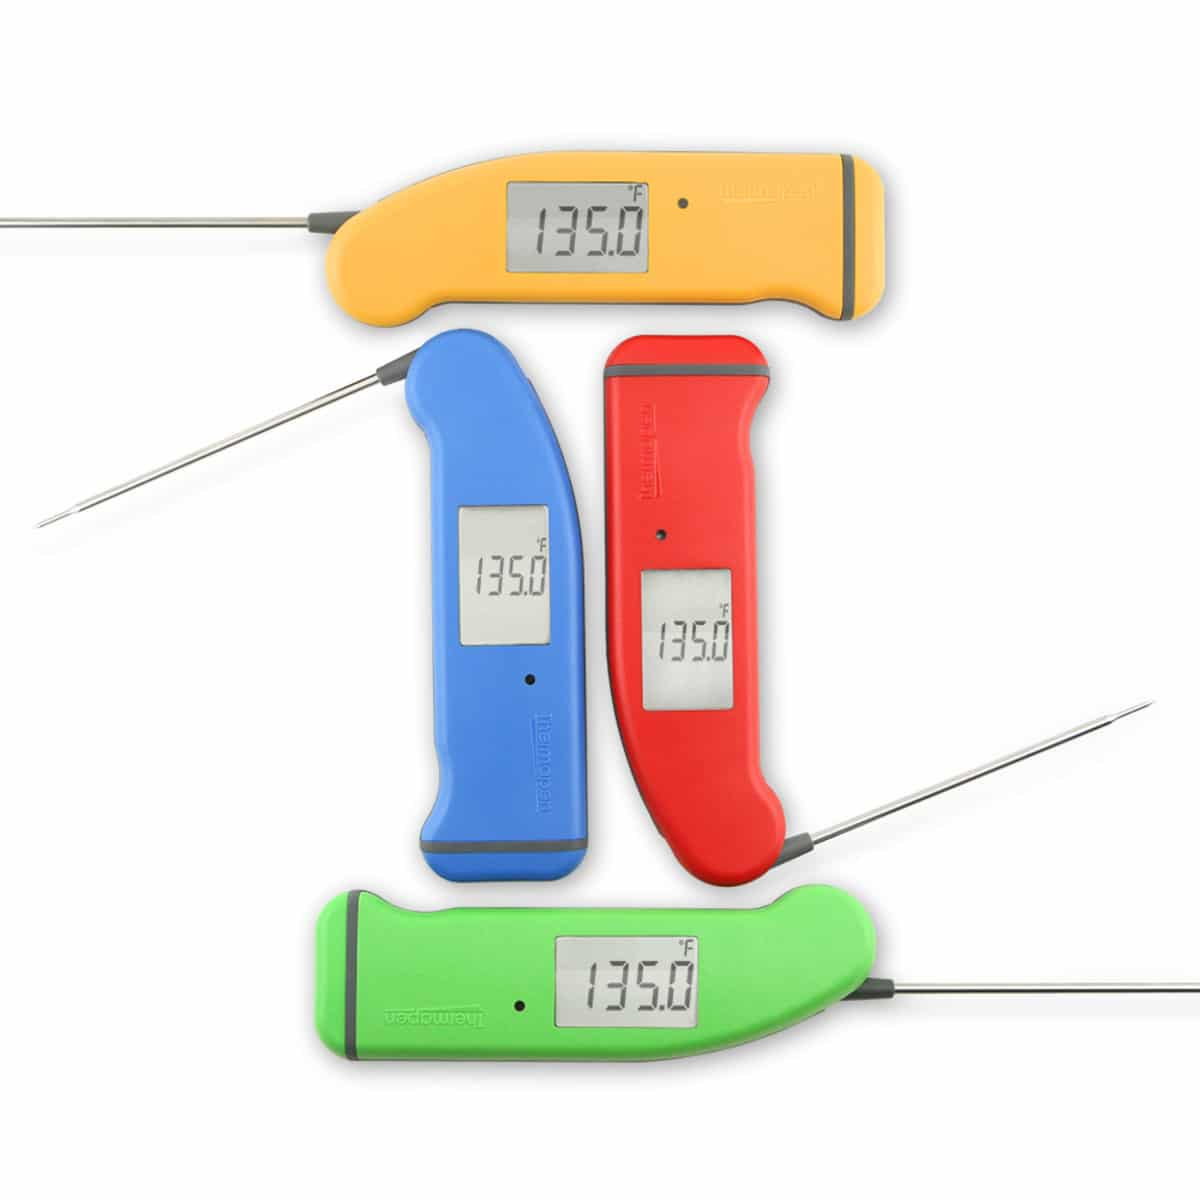 thermapen MK4 instant read thermometer